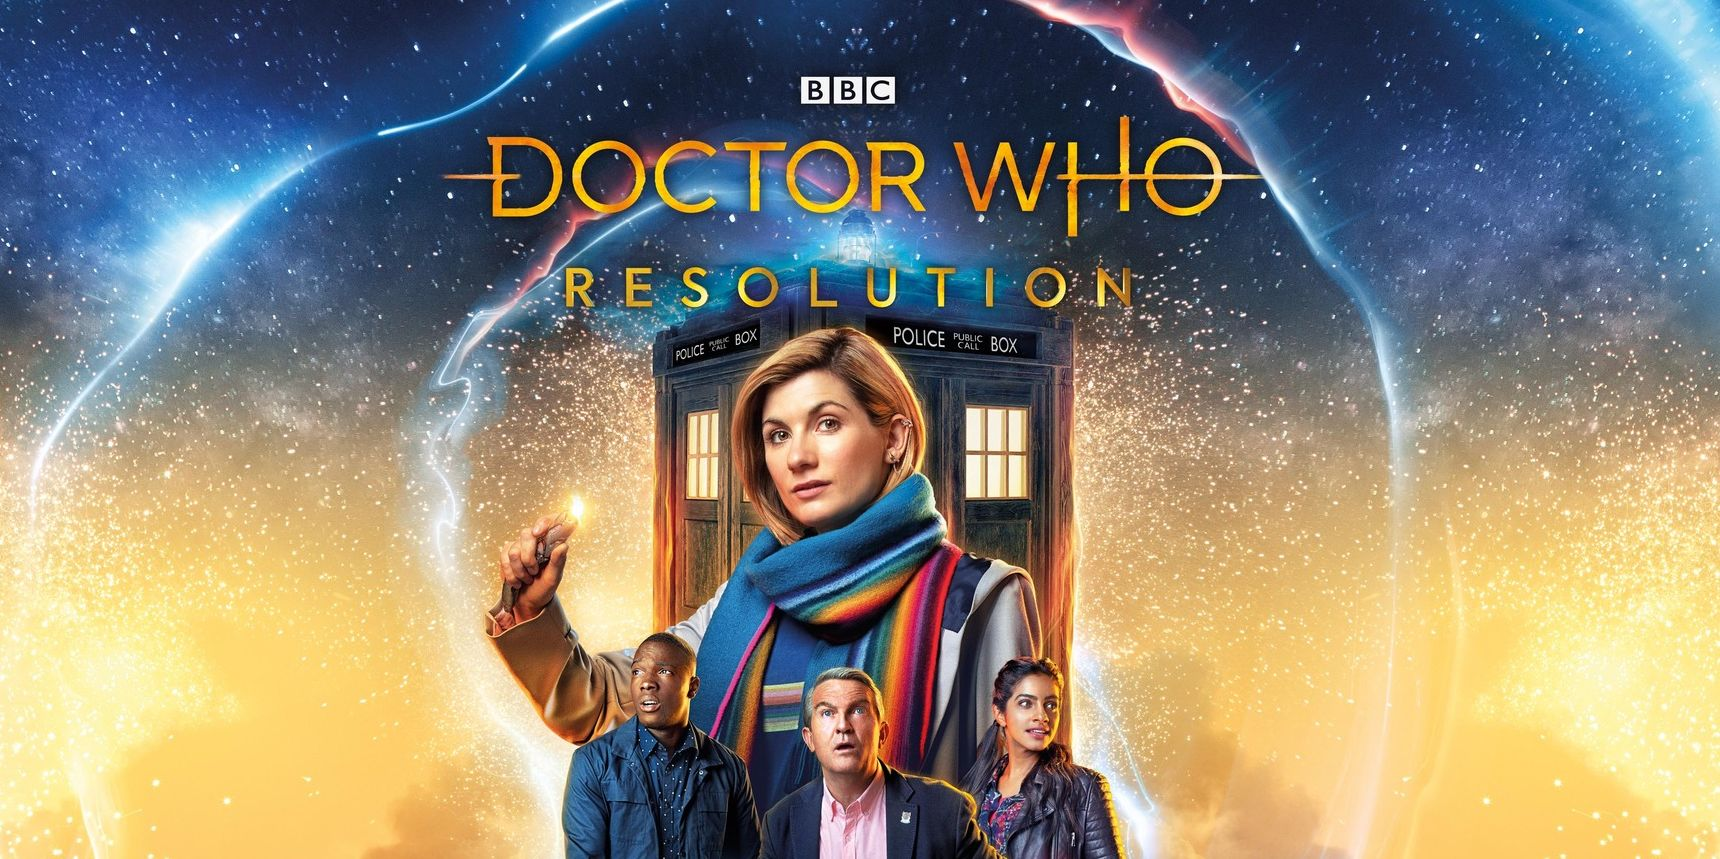 Doctor Who New Year's Day special, Resolution